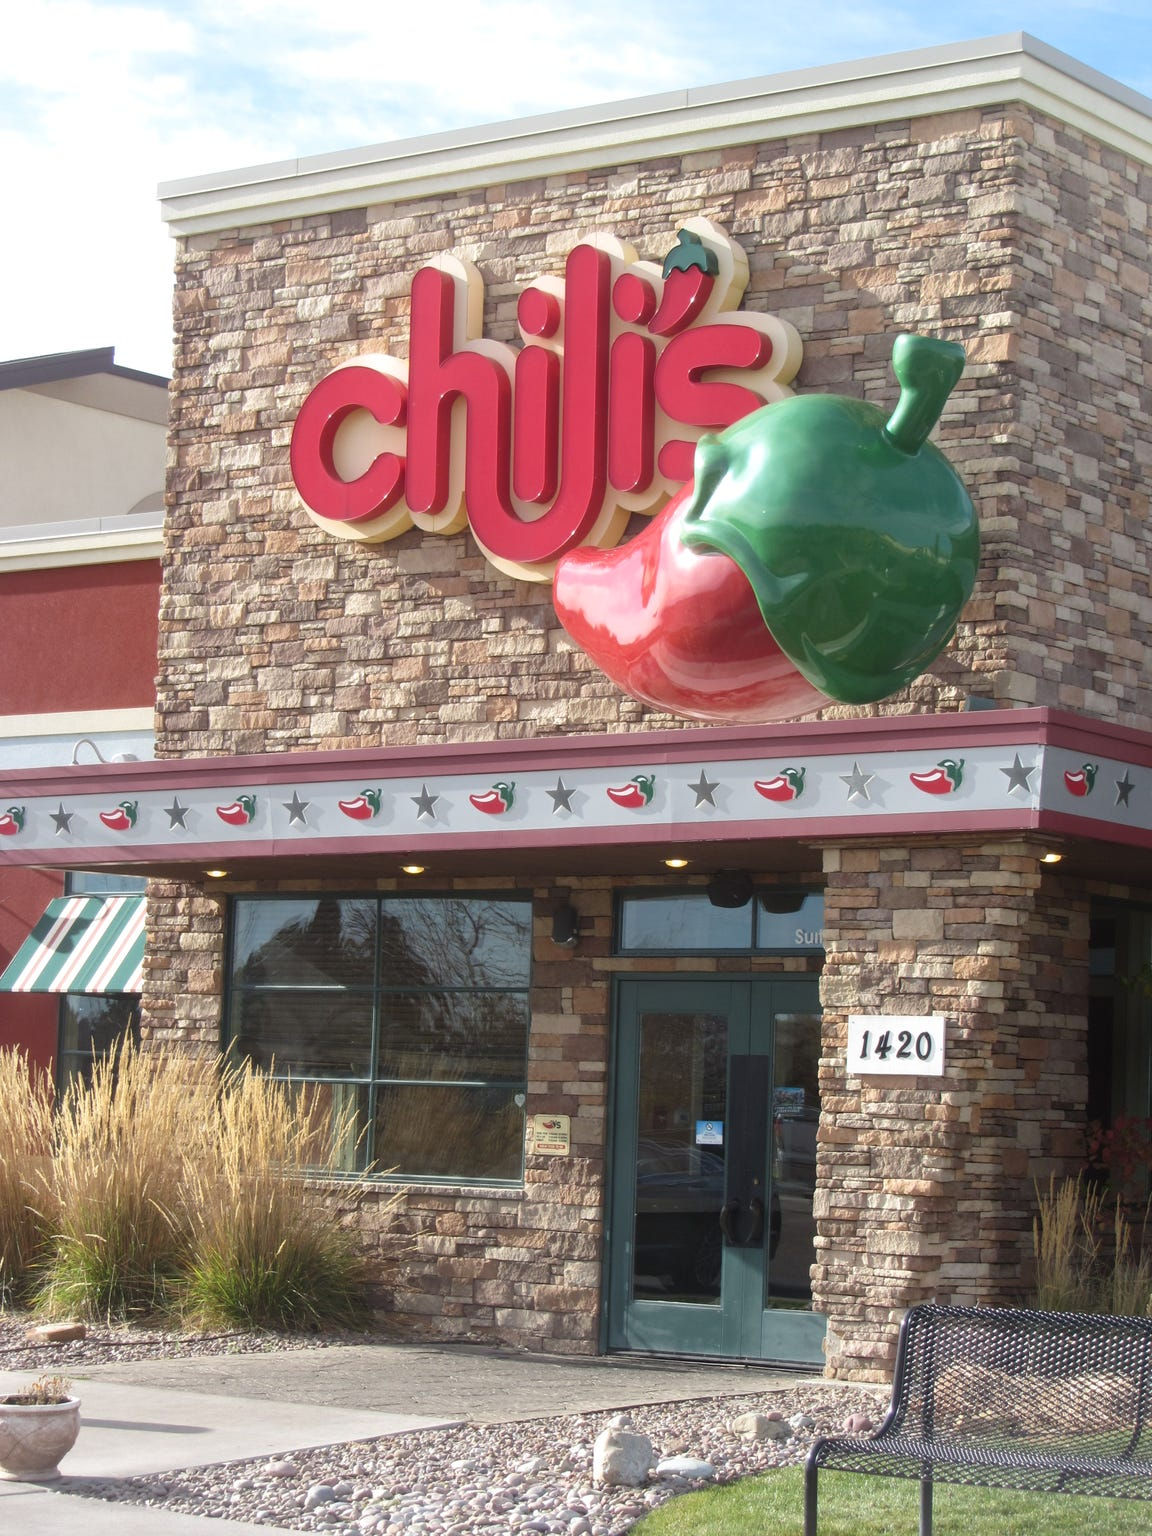 Shoot the Moon opened Chili's restaurants in Montana,